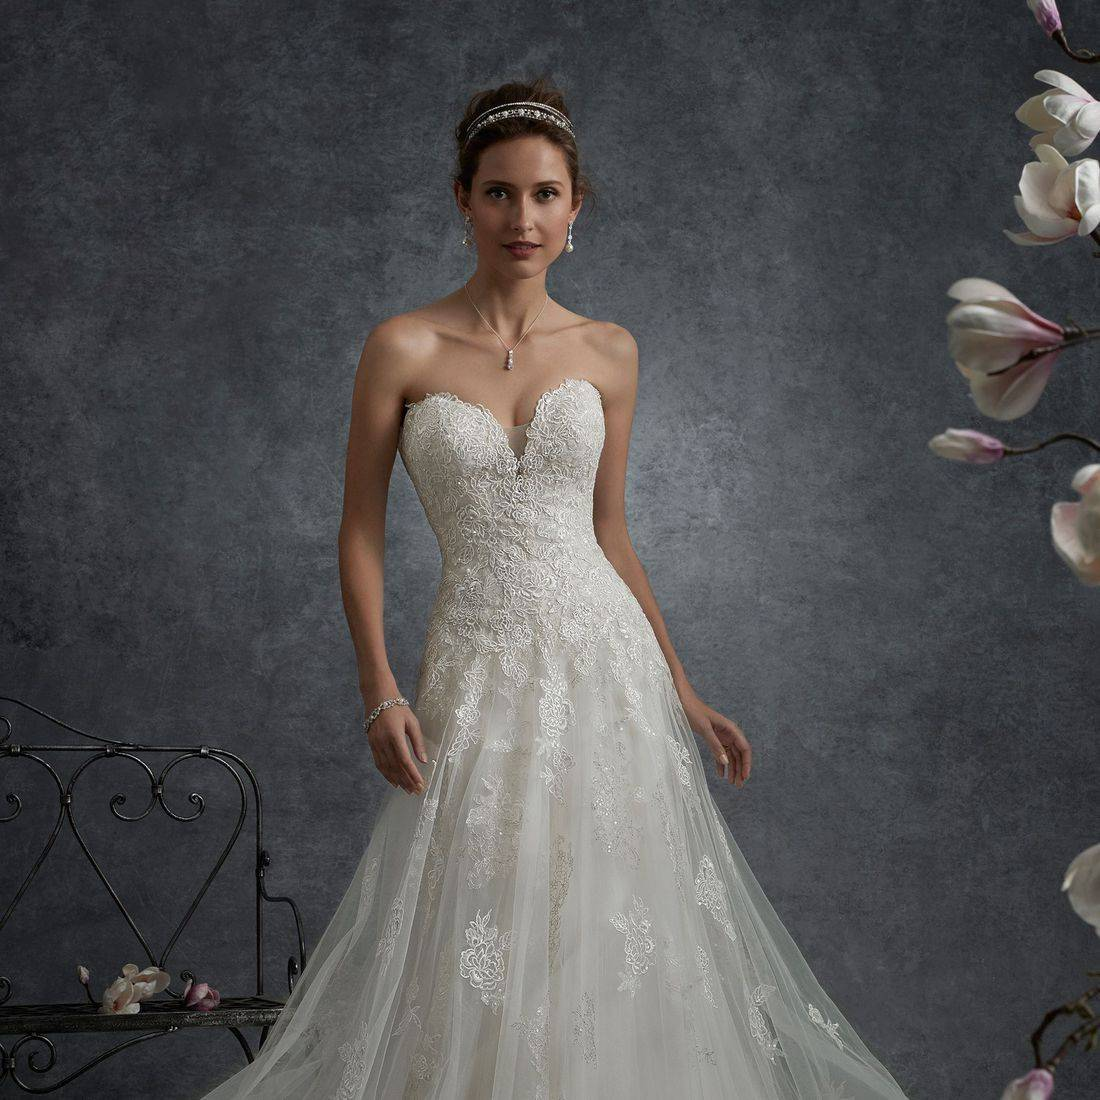 sophia tolli wedding dress, sophia tolli, aline wedding dress, sequin beaded lace wedding dress, deep sweetheart neckline wedding dress, flowy wedding dress, flattering wedding dress, lace up back wedding dress, corset back wedding dress